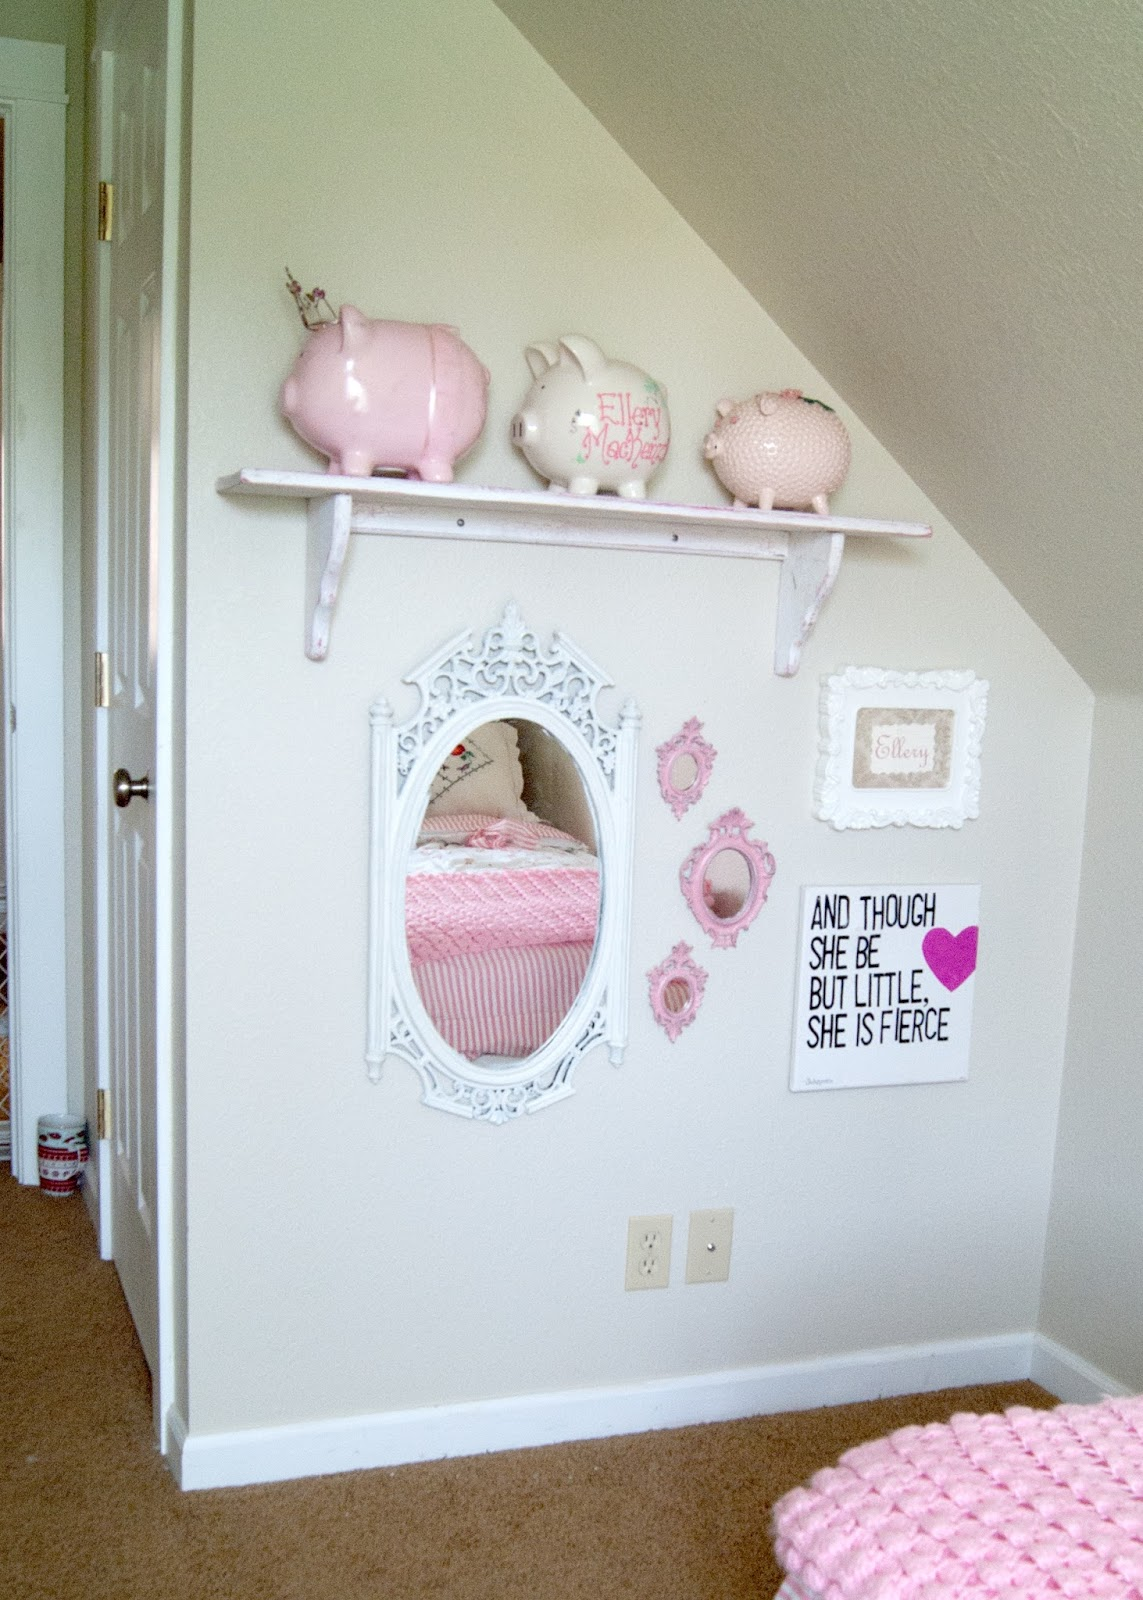 Gallery wall - Pigs, mirrors and quotes